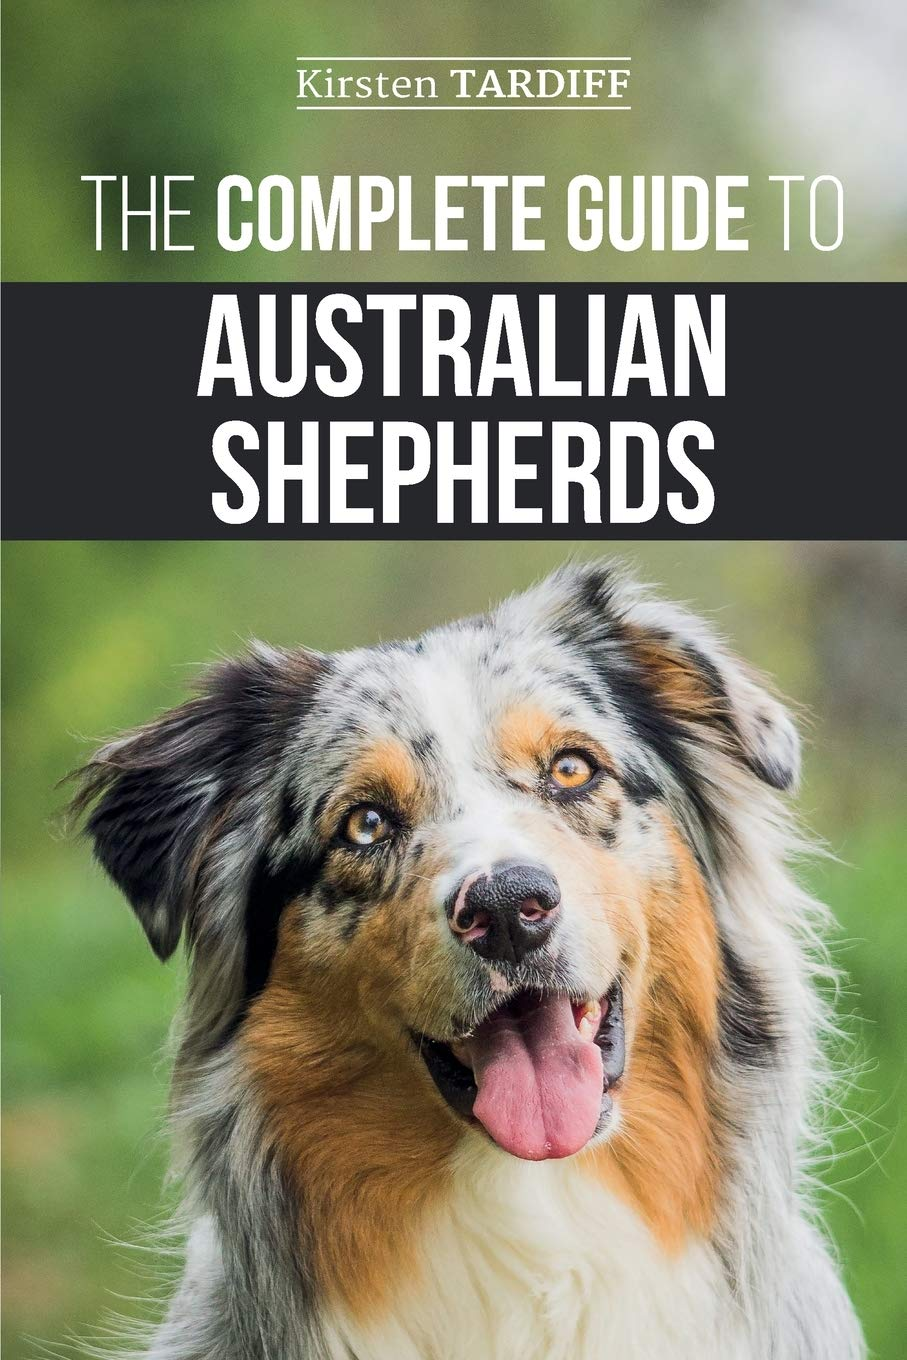 The Complete Guide to Australian Shepherds: Learn Everything You Need to Know About Raising, Training, and Successfully…